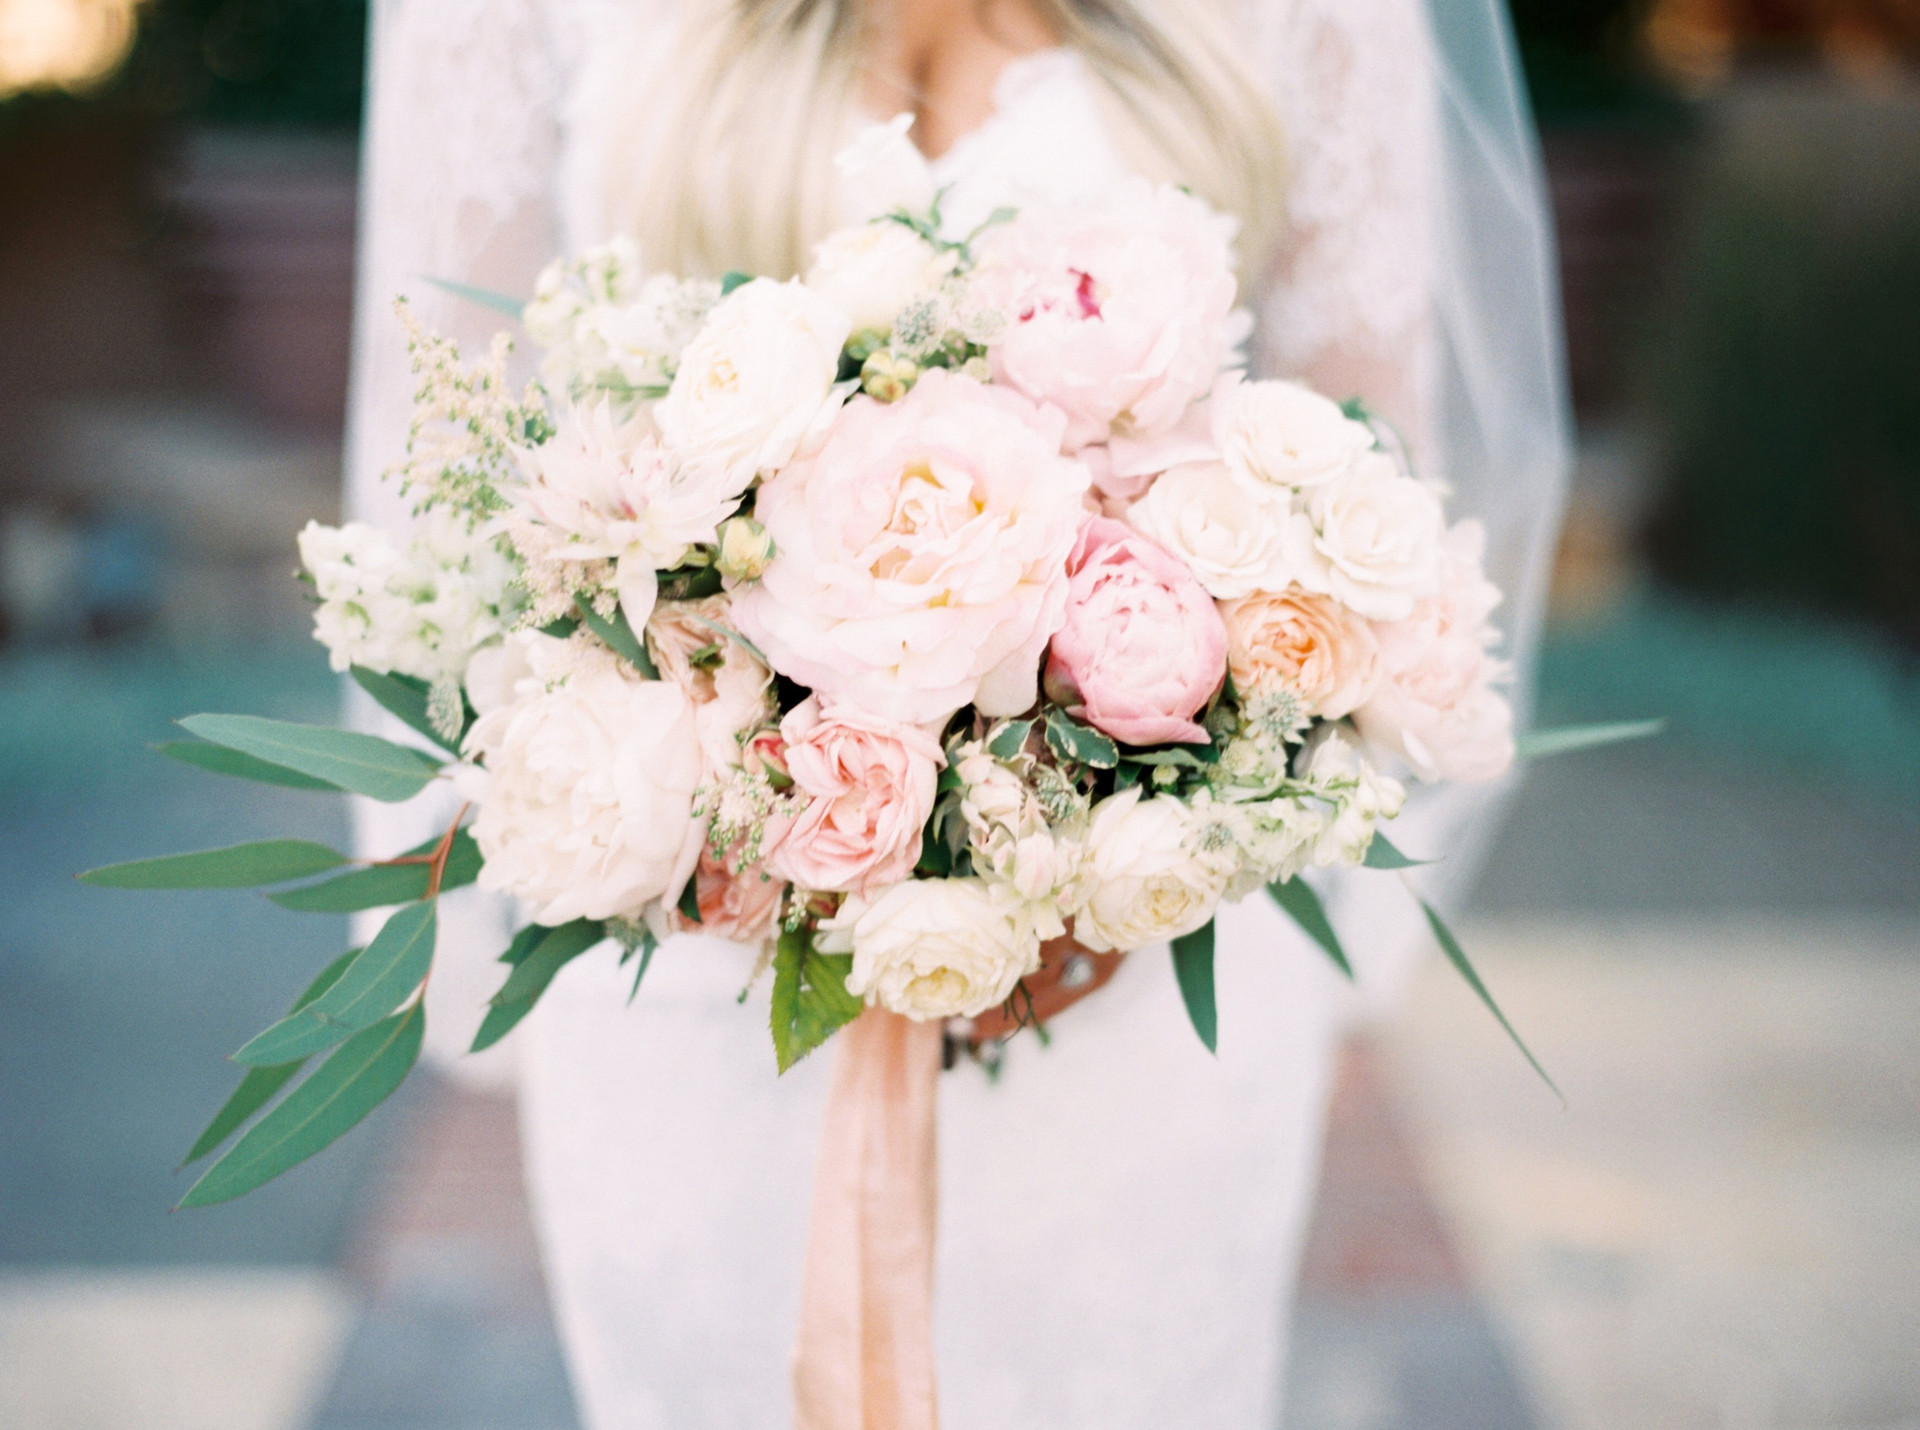 Classic blush and ivory bridal bouquet with peonies and roses. Photo: Mary Claire